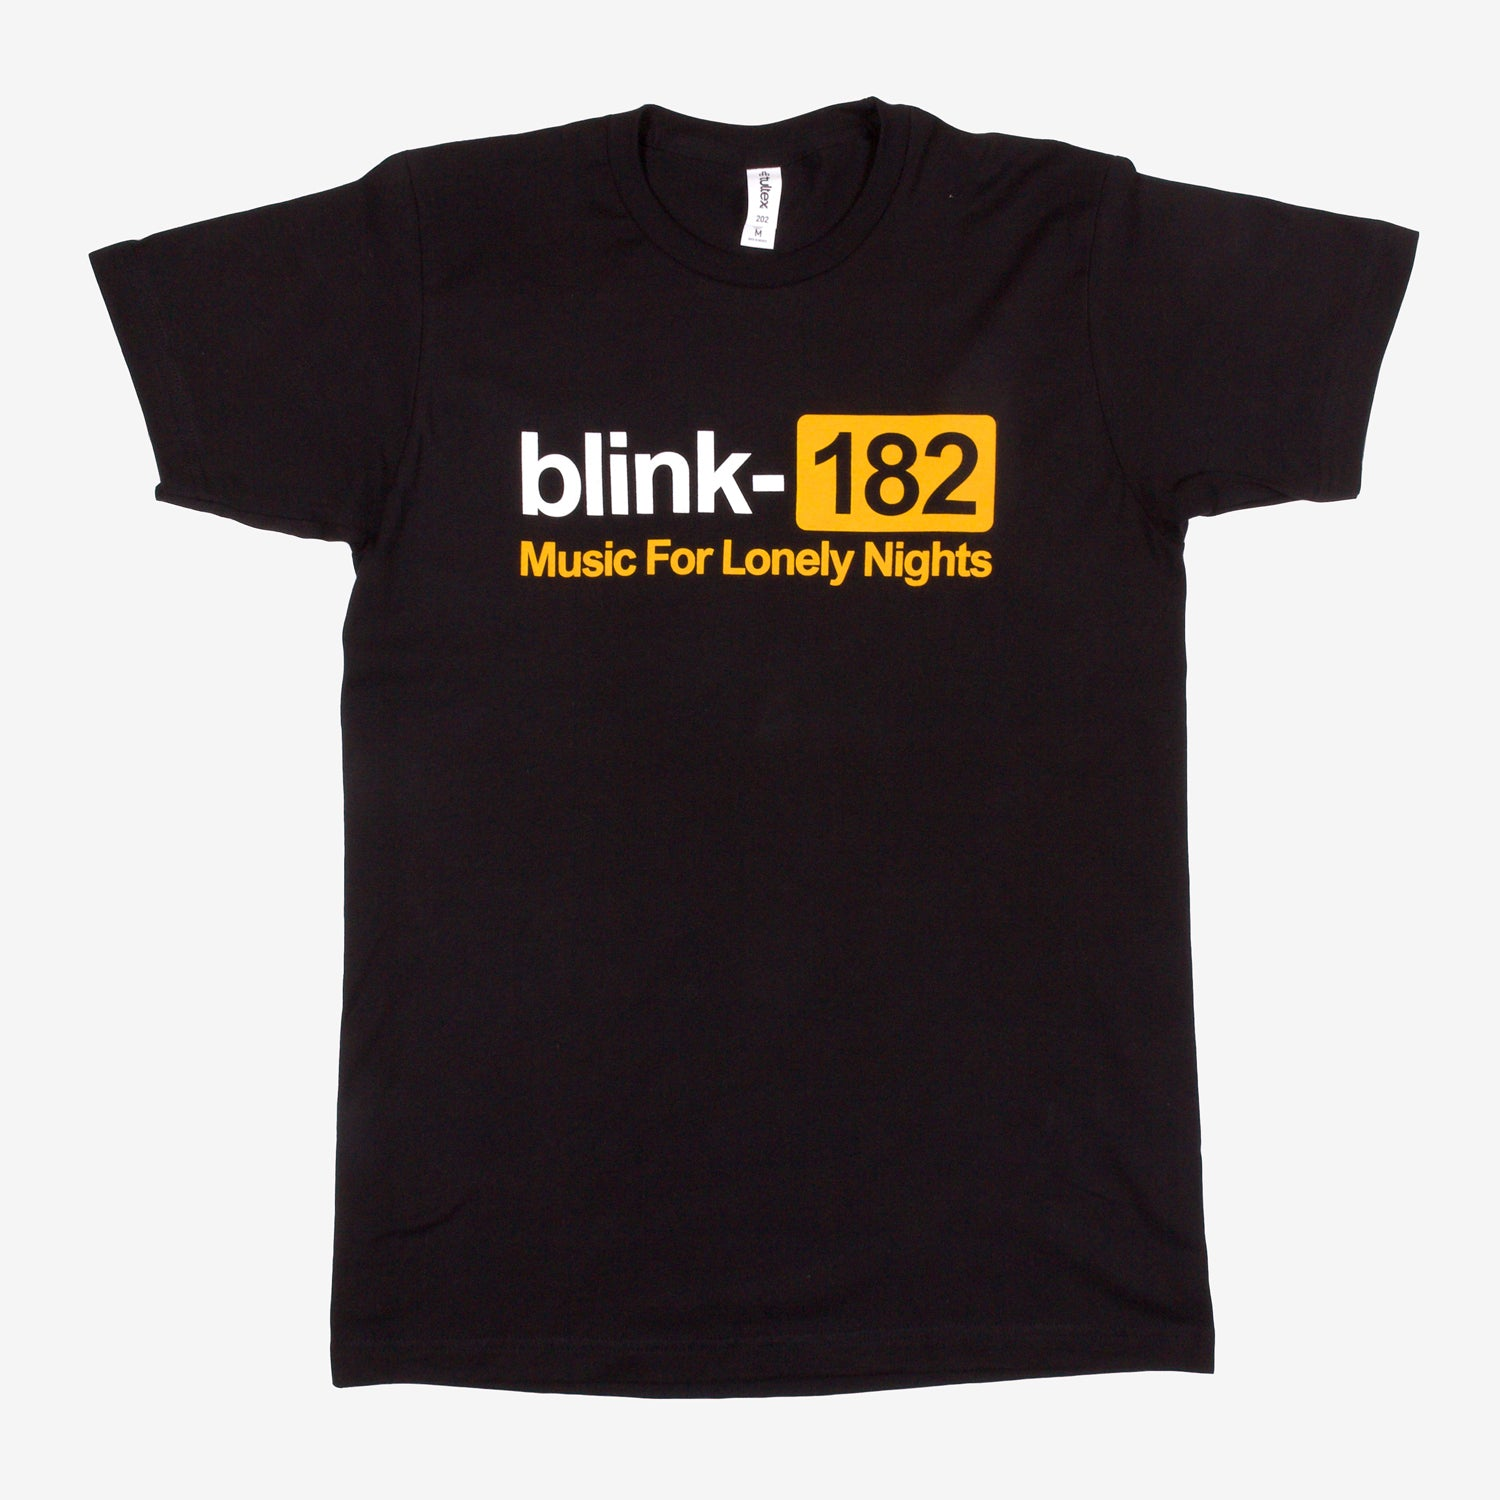 blink-182 Lonely Nights Tee Black